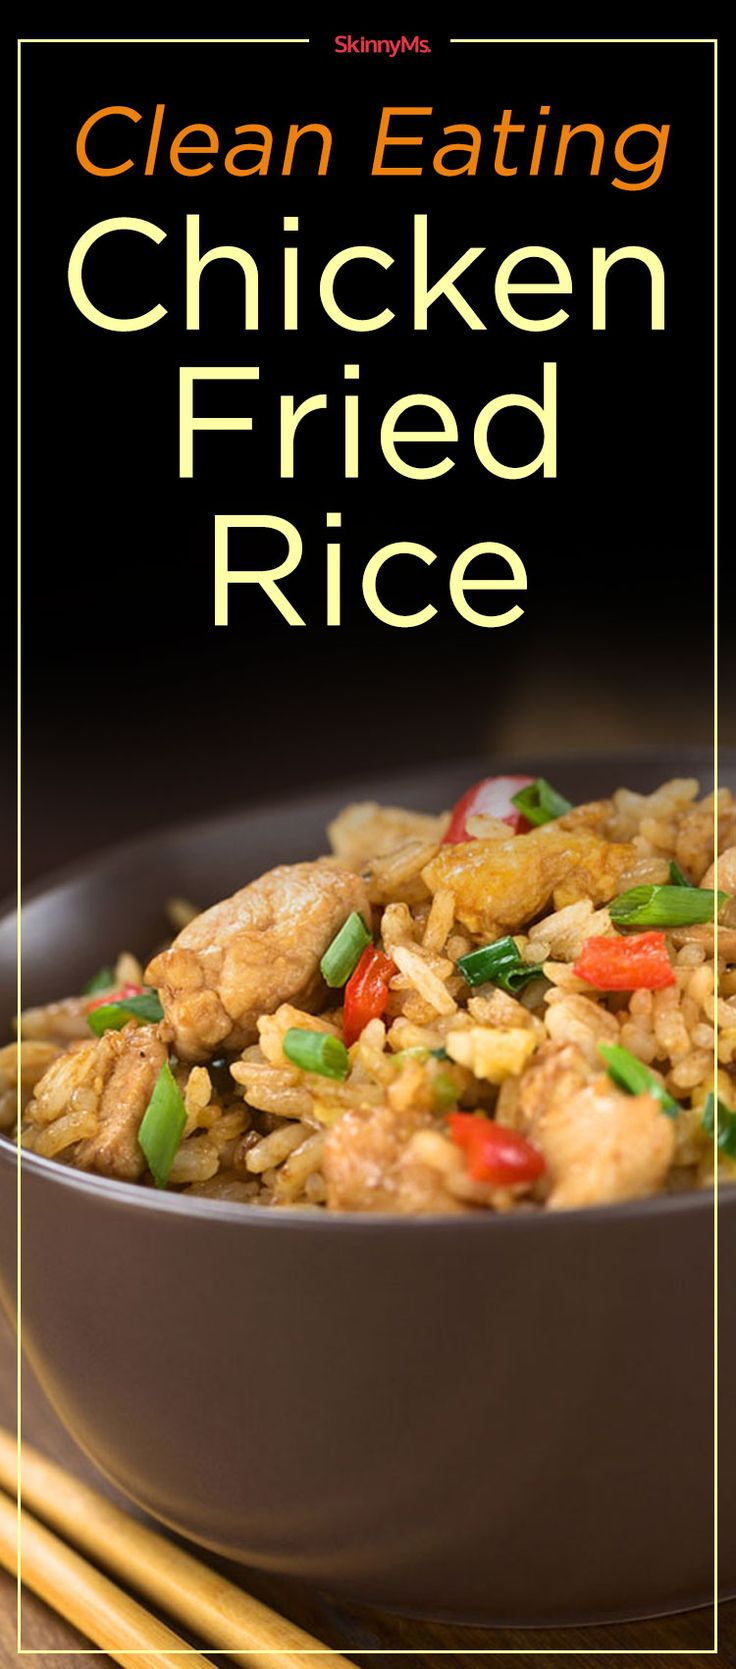 Clean Eating Chicken Fried Rice #cleaneating #takeoutfakeout #healthyrecipe